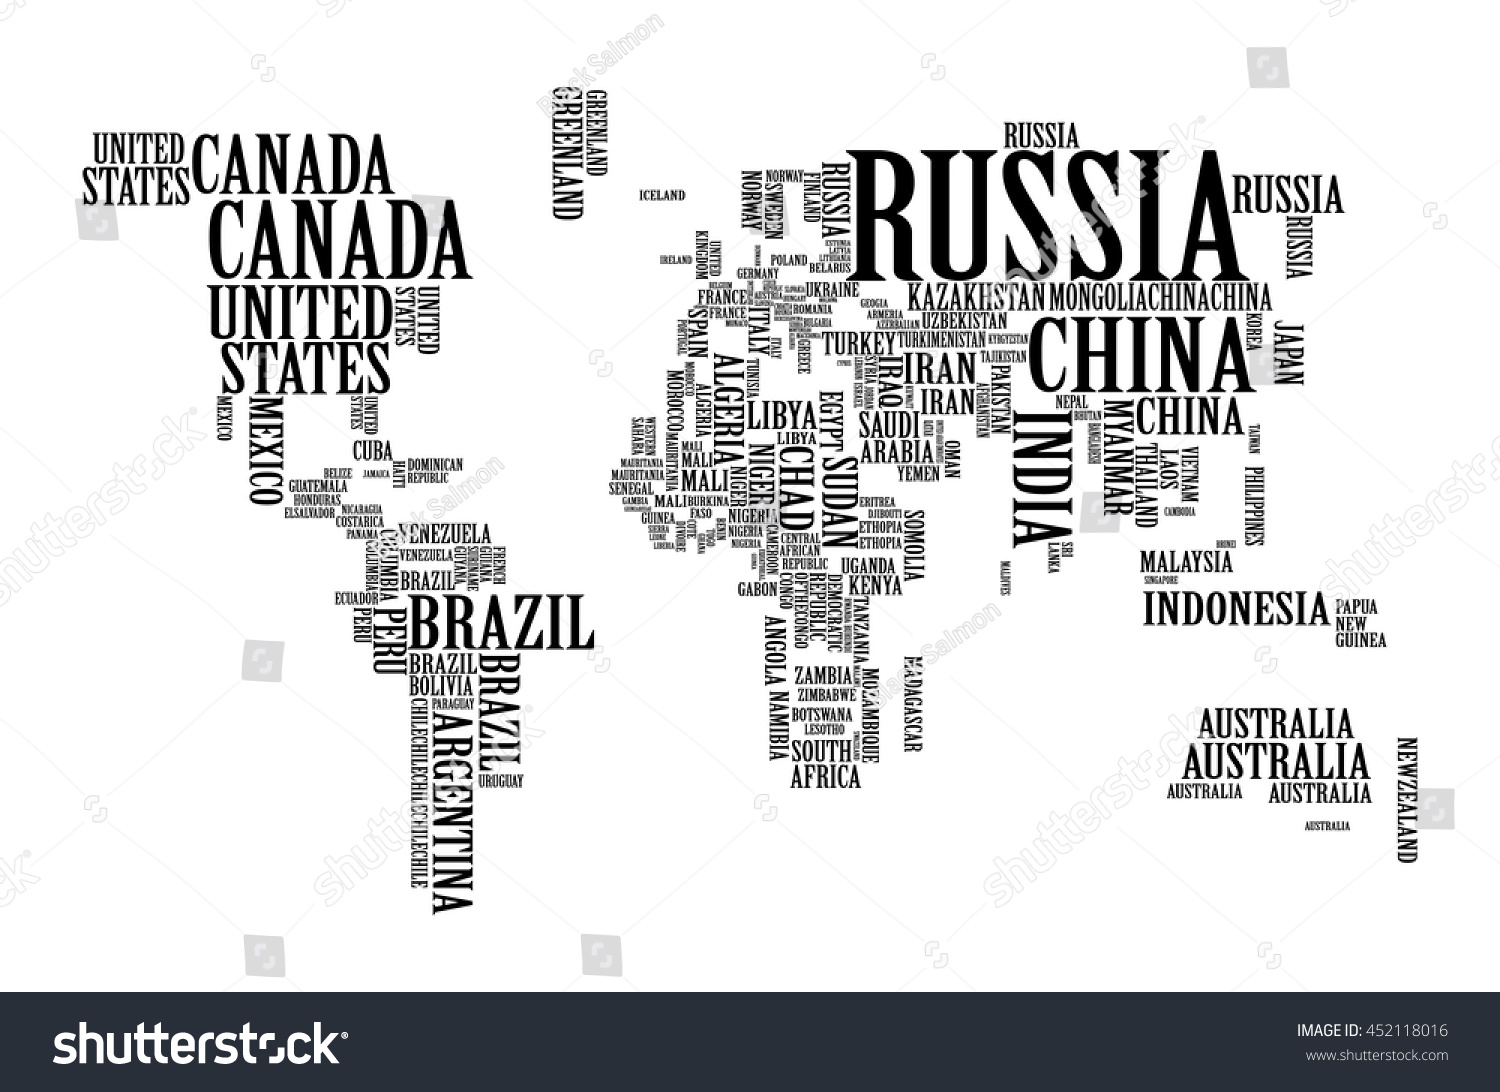 World map countries name text typography stock vector royalty free world map with countries name text or typography gumiabroncs Image collections